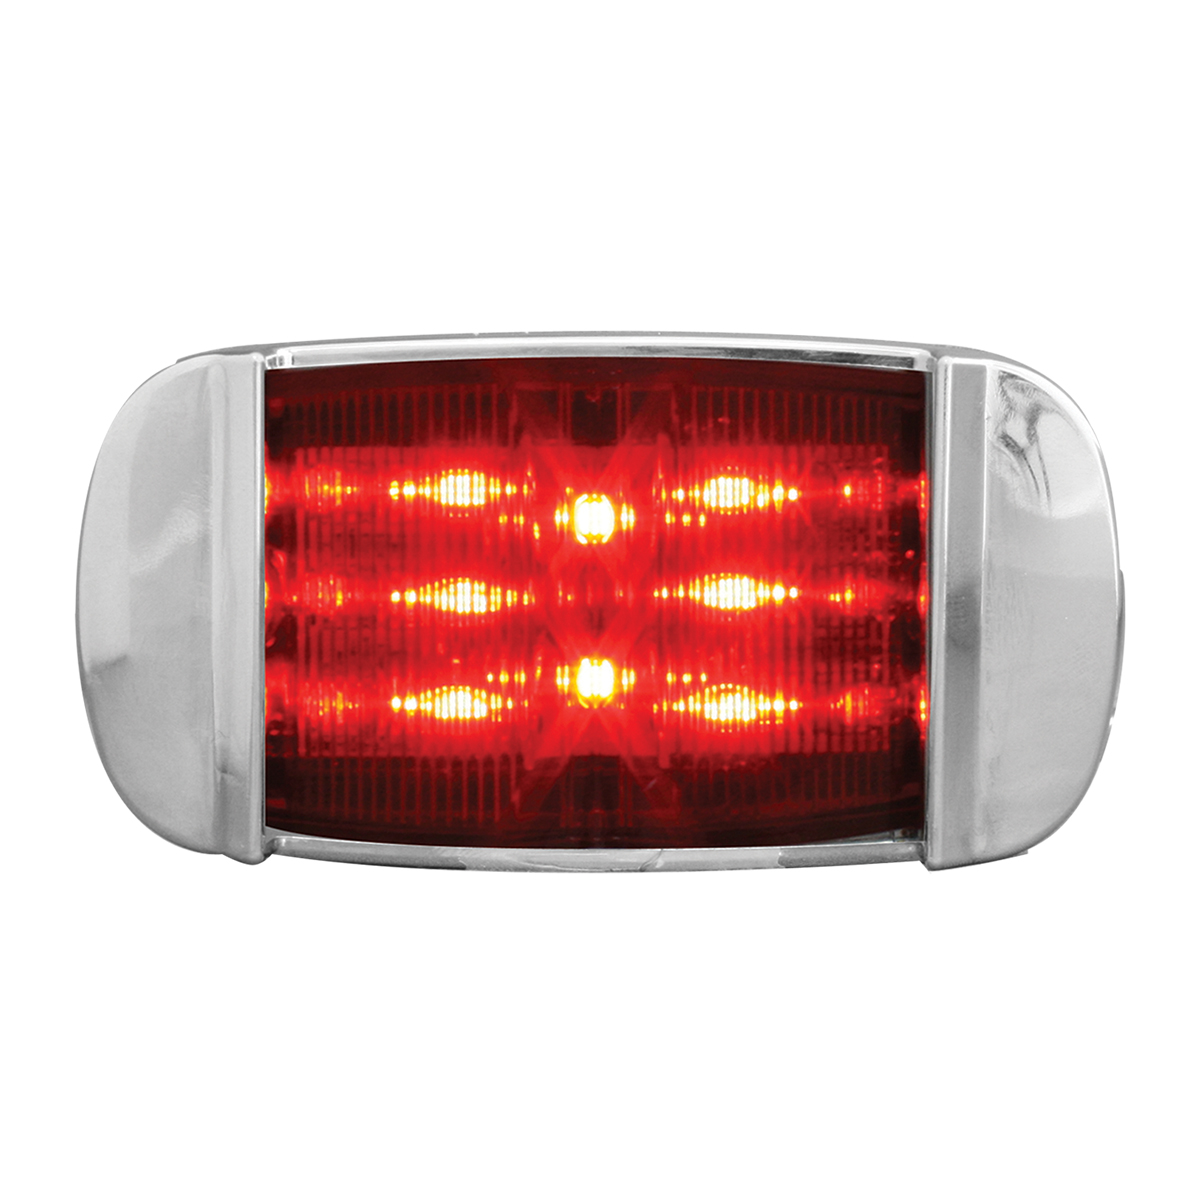 76256 Rectangular Camel Back Wide Angle LED Marker Light w/ Chrome Bezel